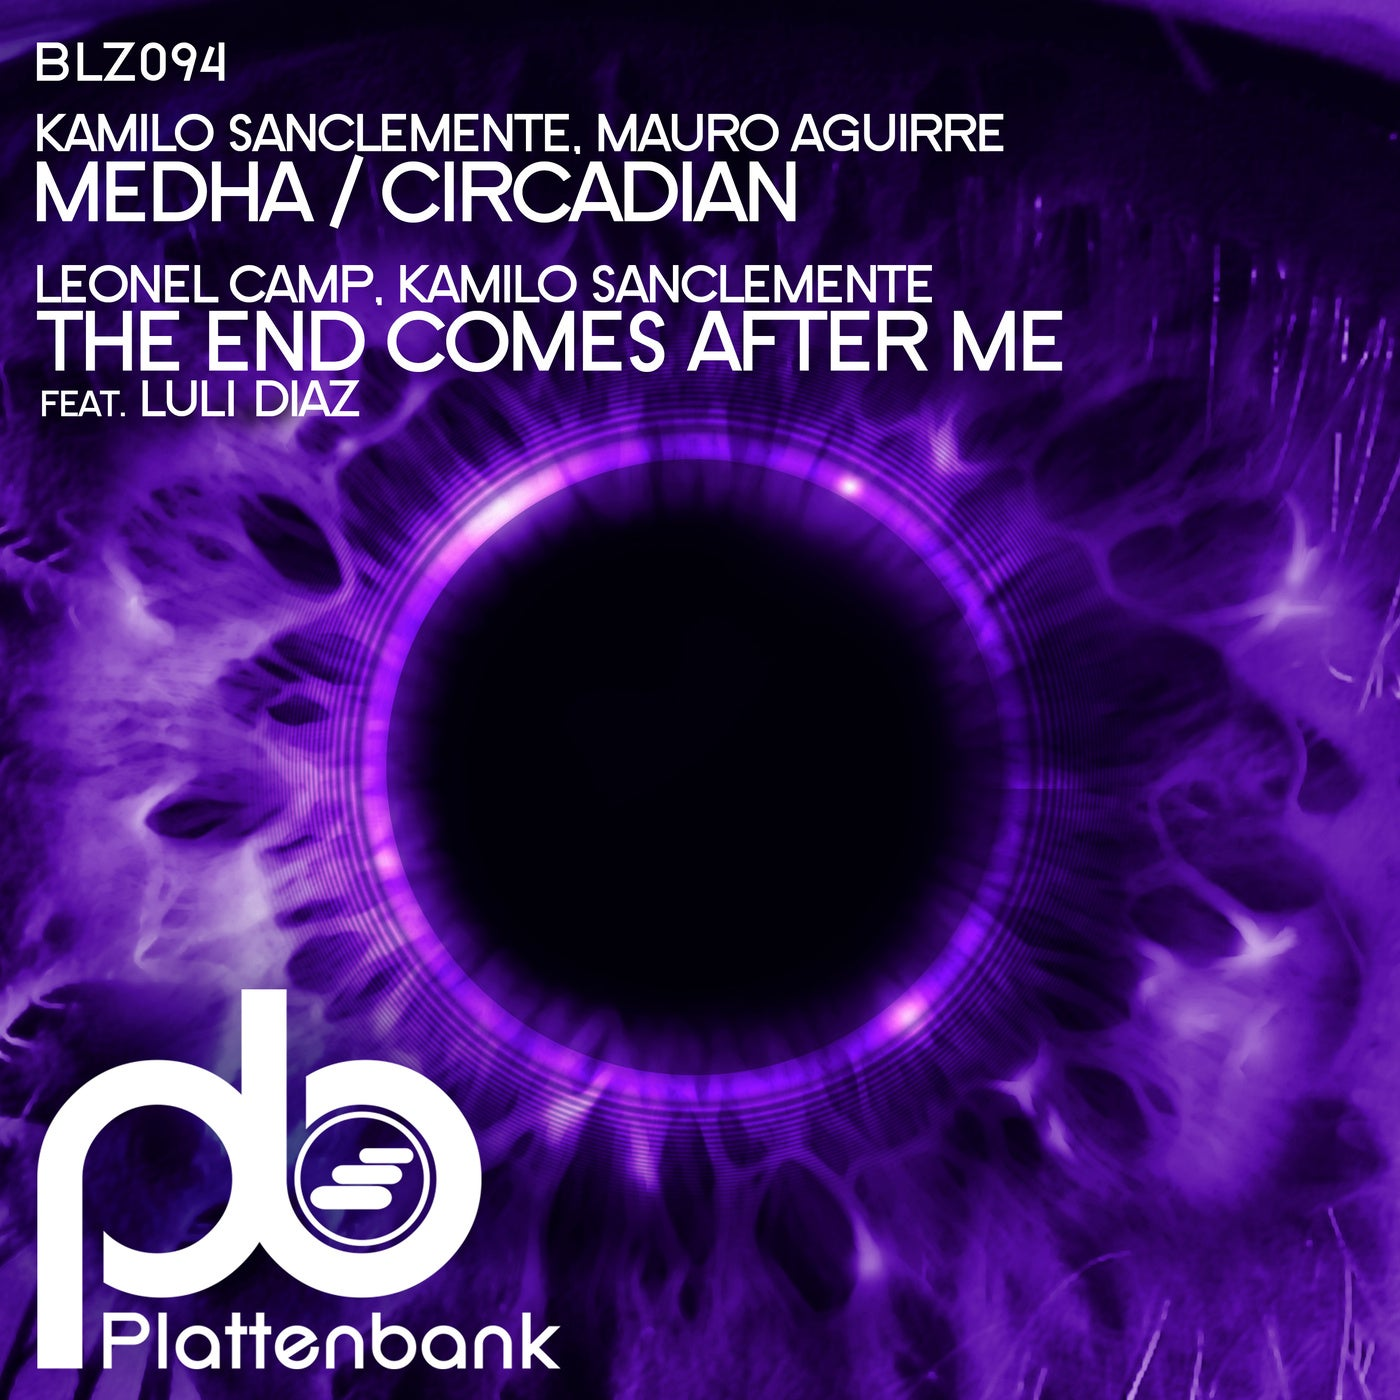 The End Comes After Me feat. Luli Diaz (Original Mix)